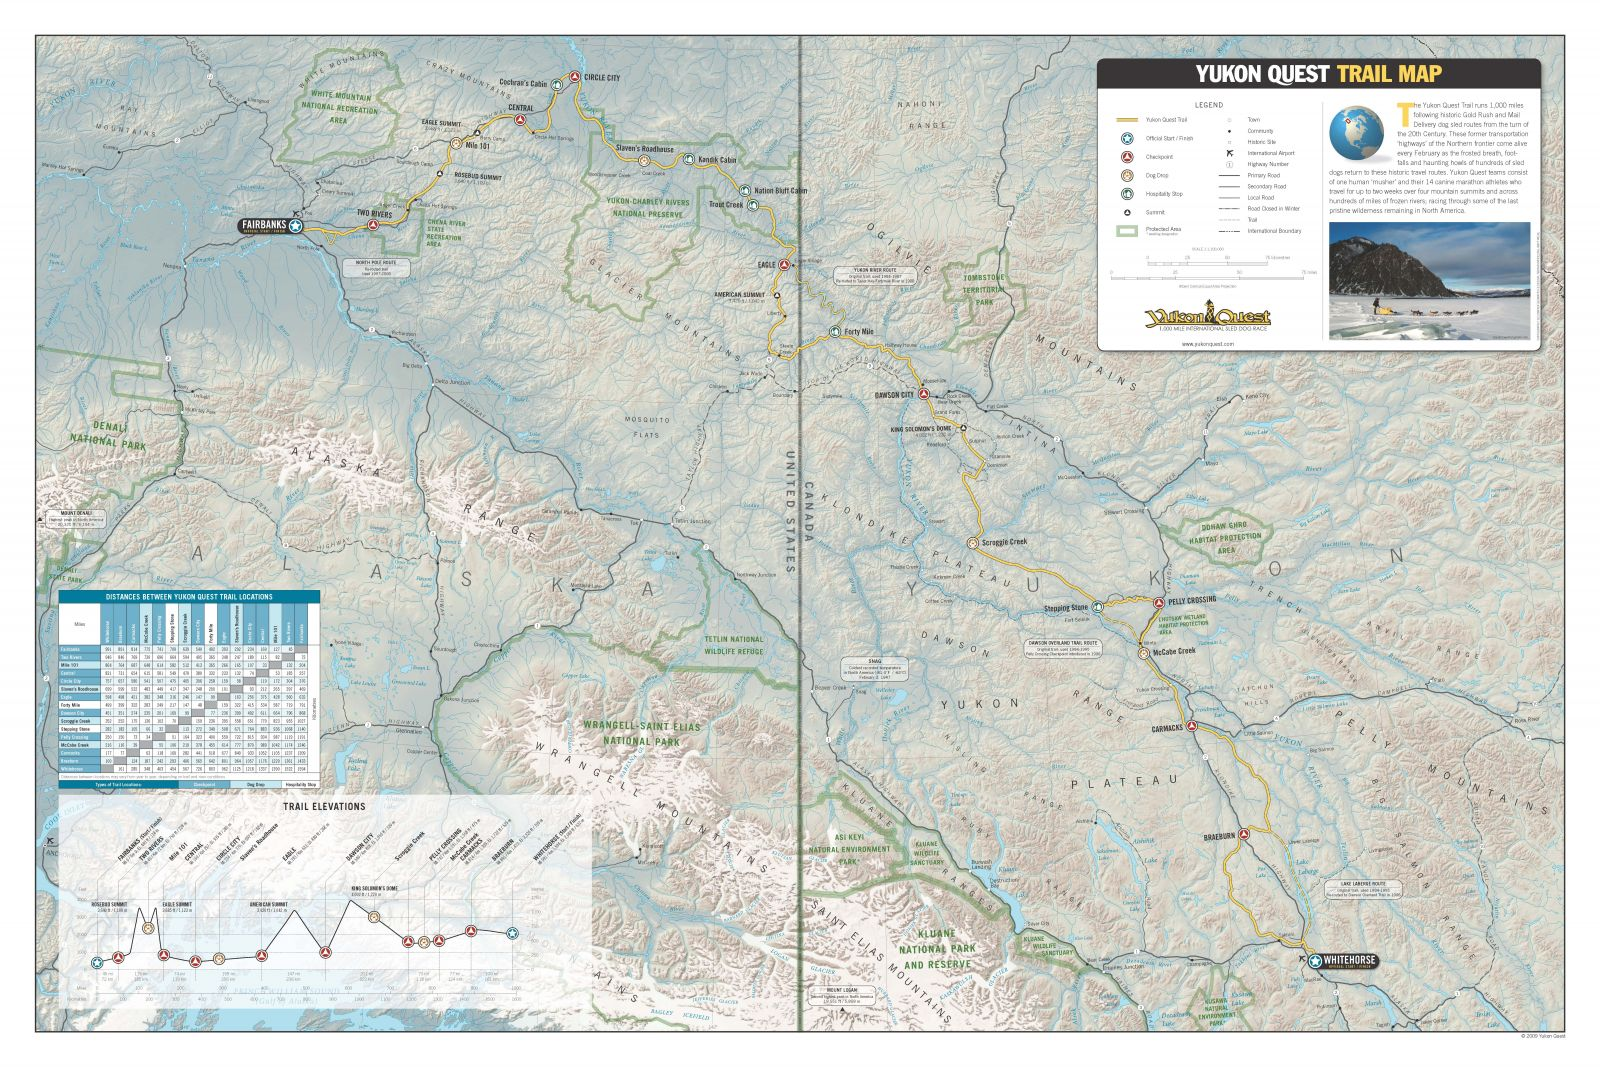 Yukon Quest Trail Map Preview